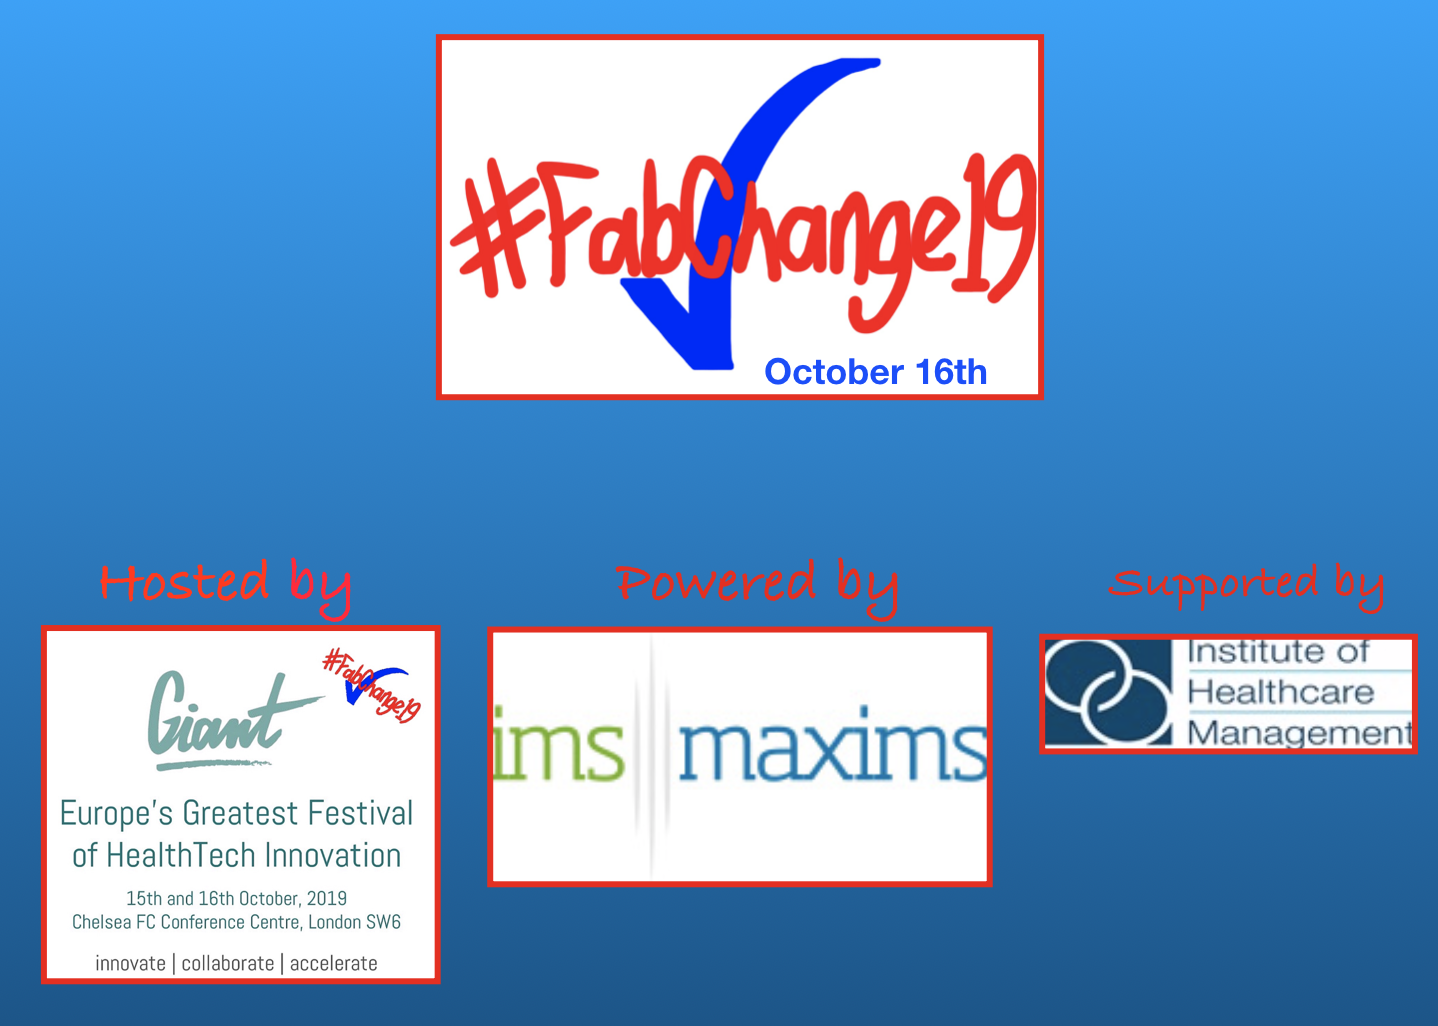 Fab Change 2019 at Addenbrookes Hospital - Women and Children's featured image